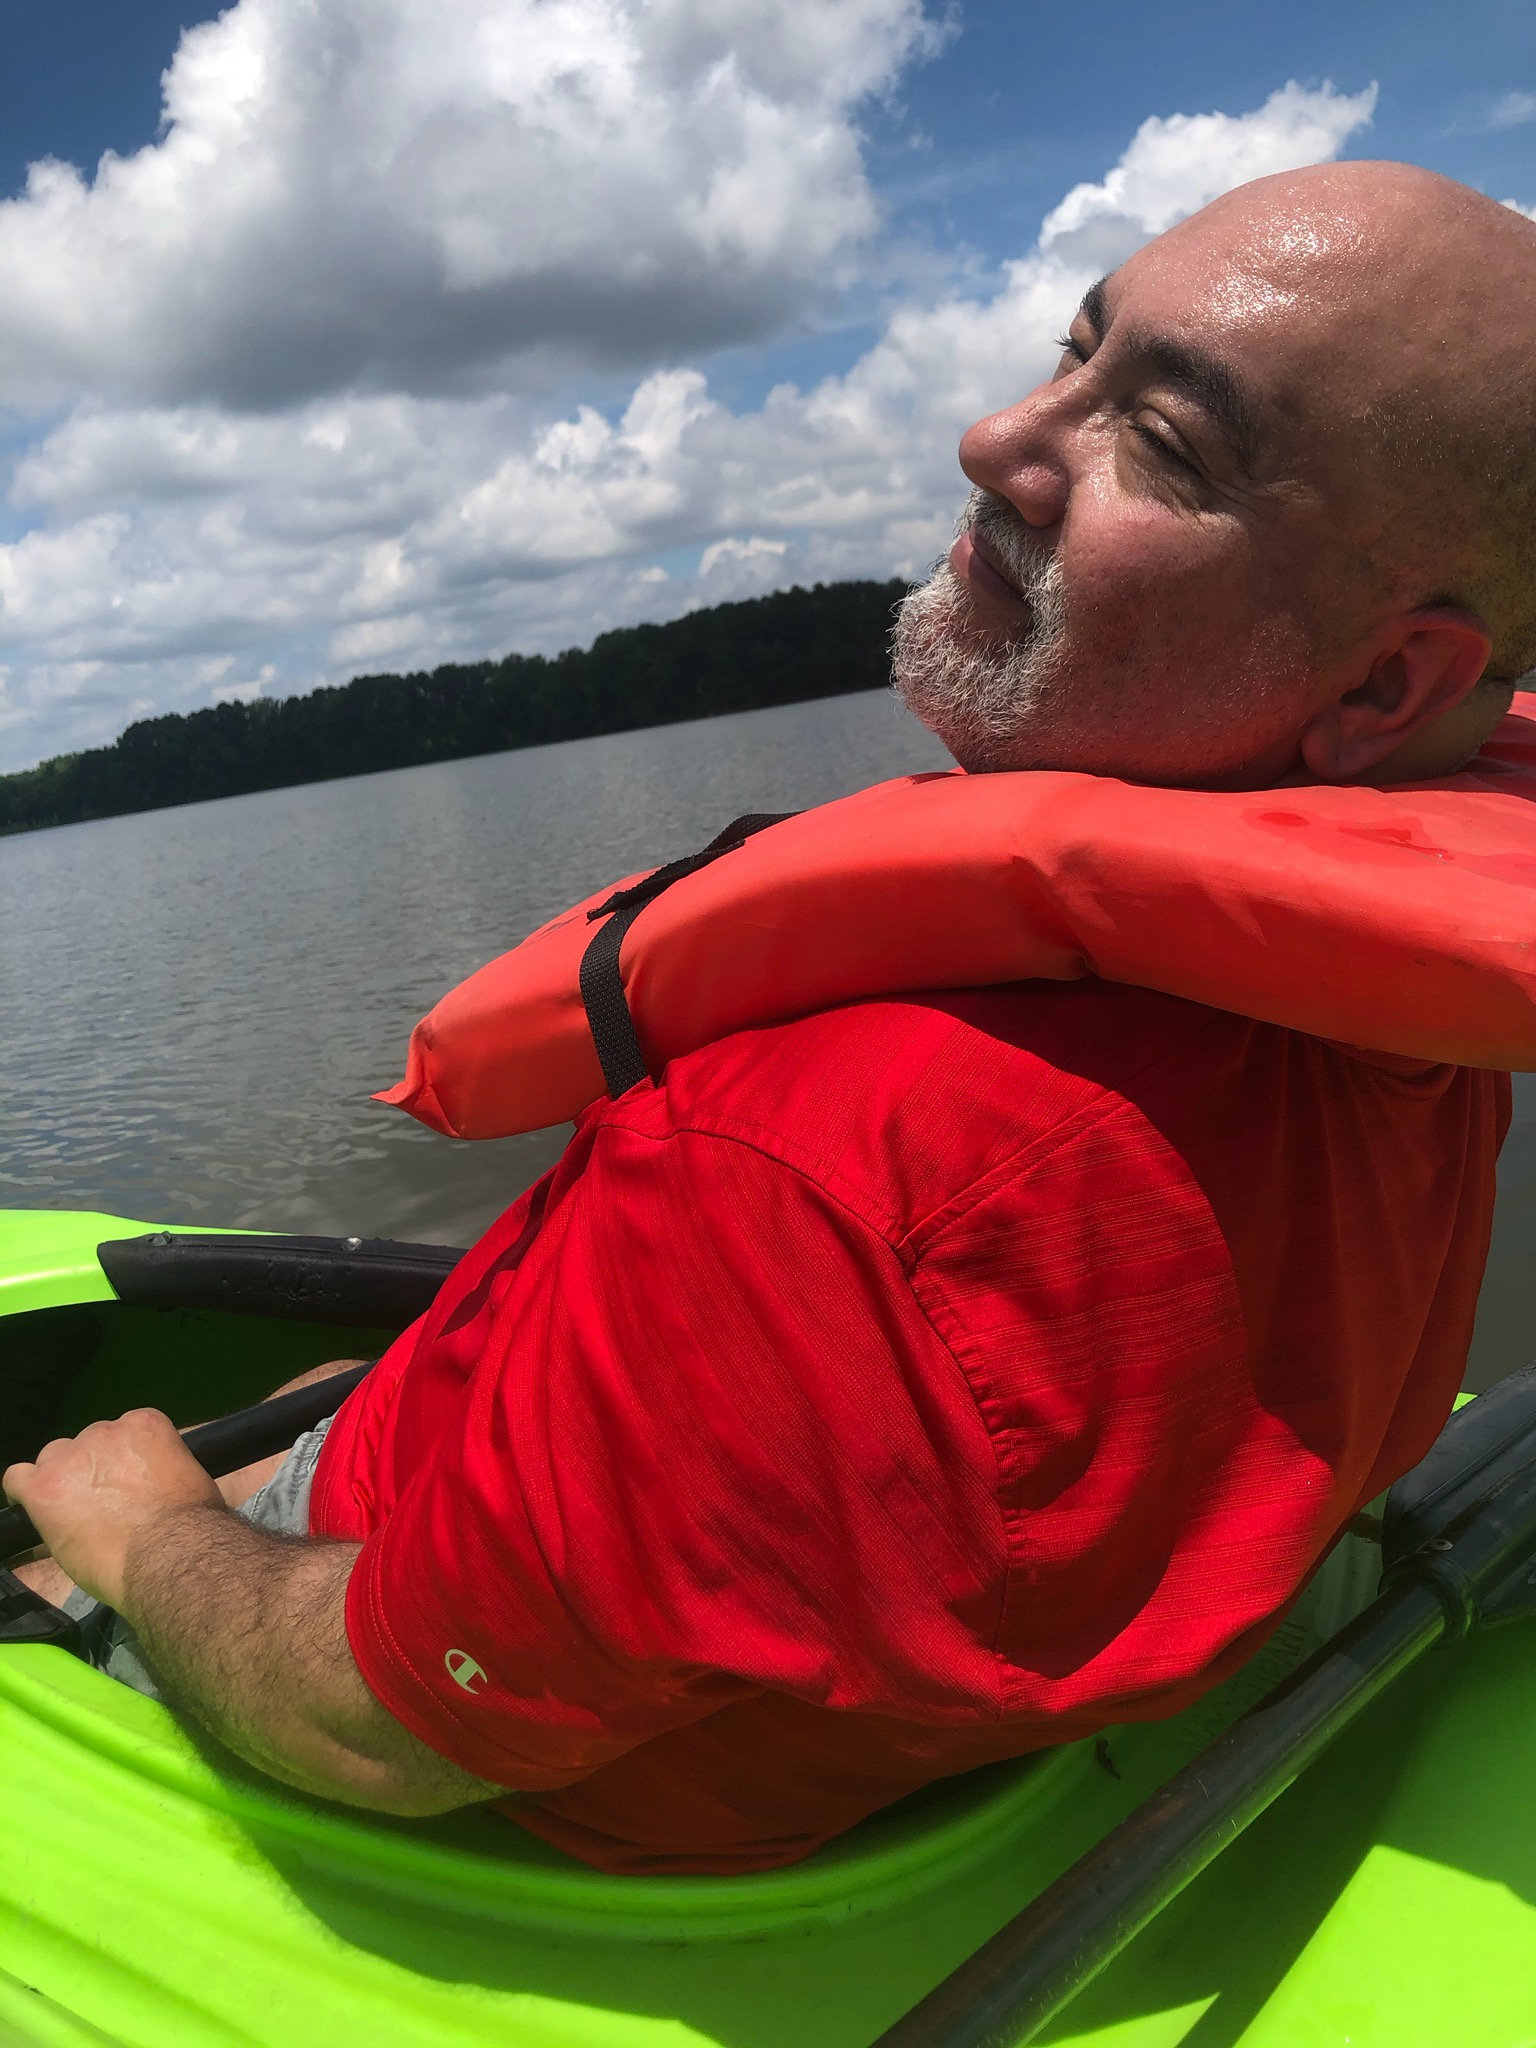 Frank Lopez, extension director for North Carolina Sea Grant and the NC Water Resources Research Institute, kayaks on a lake in Garner, N.C.